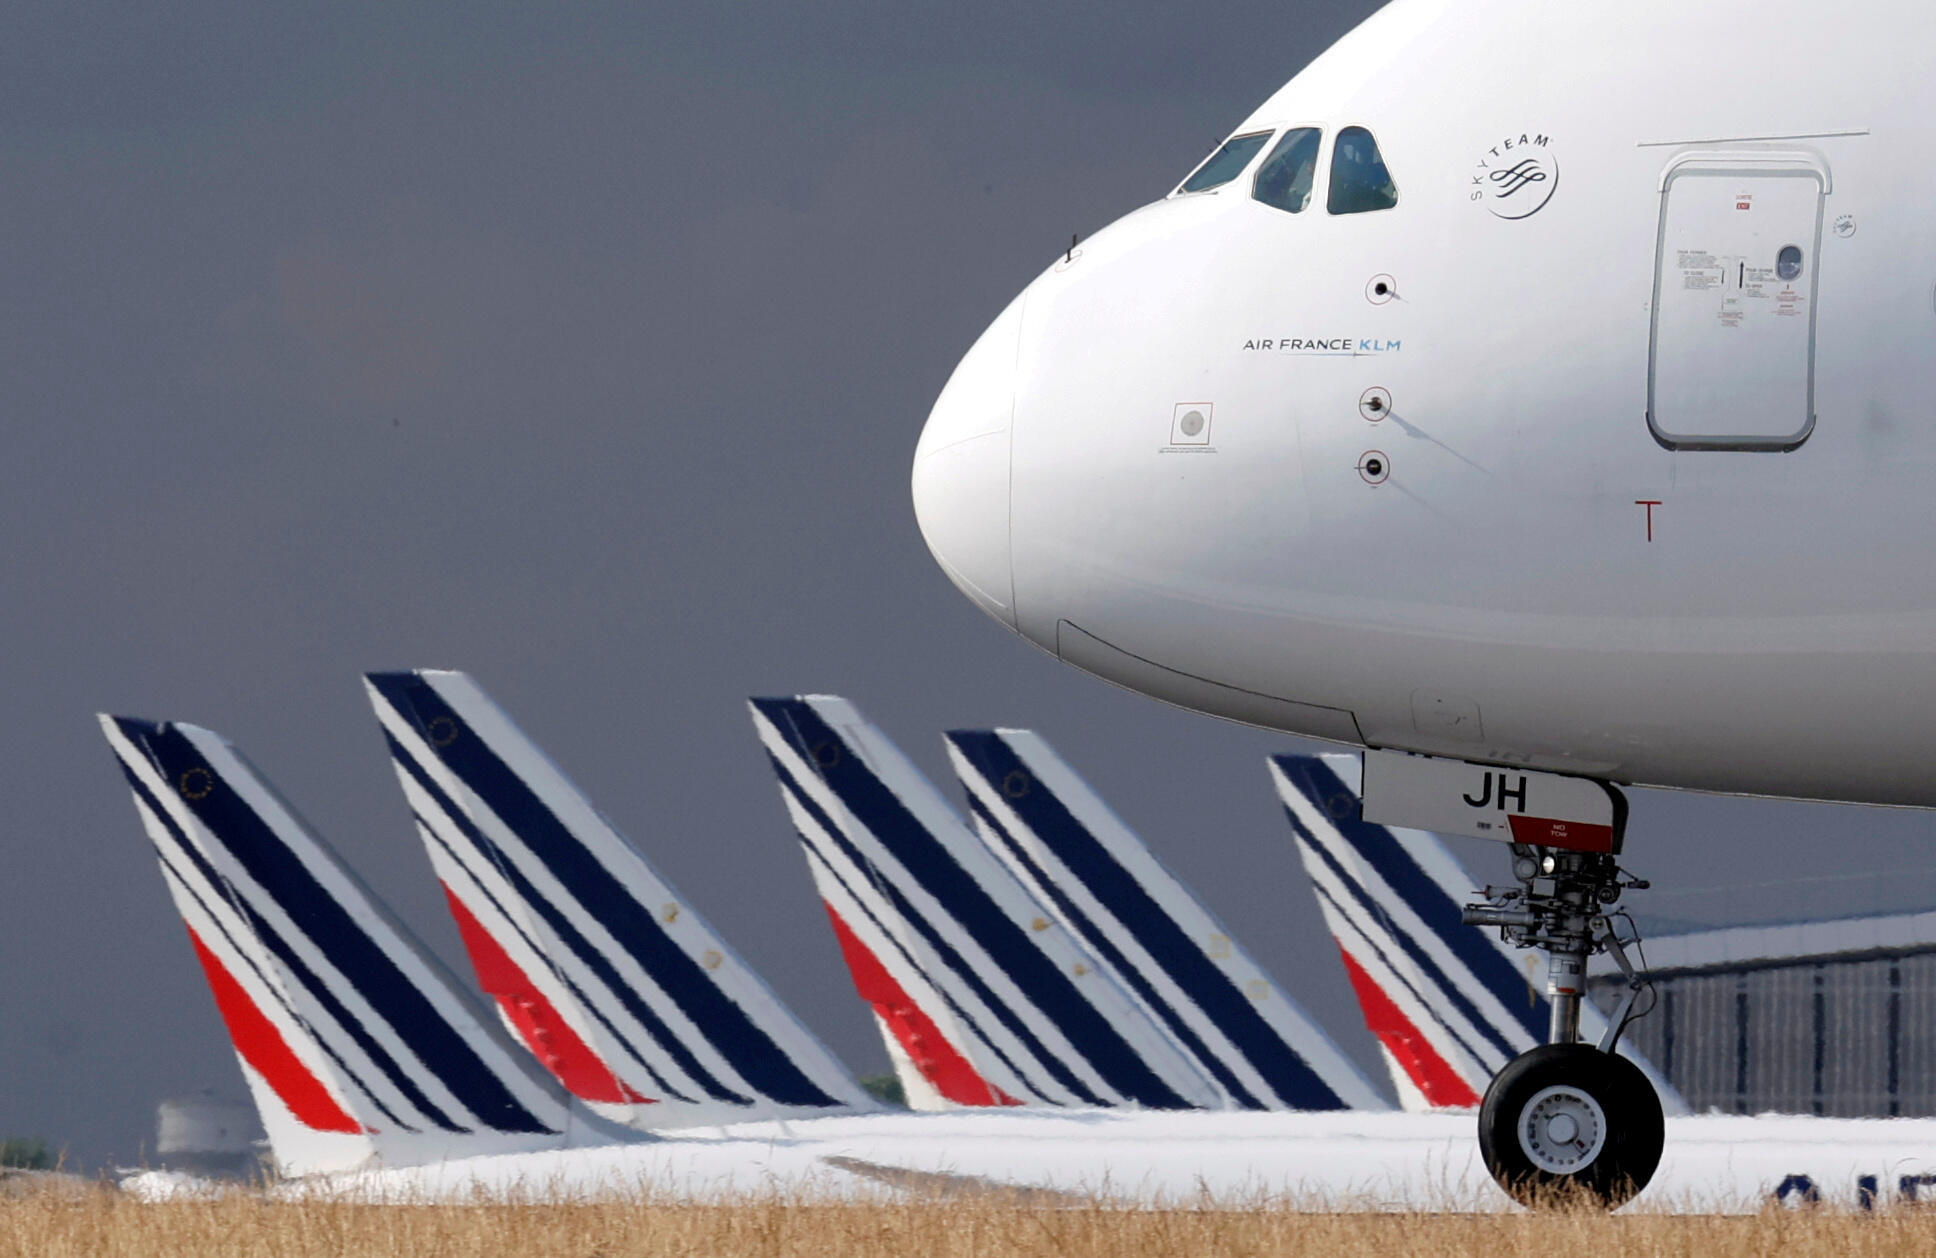 Some of the Air France fleet on the tarmac of Charles de Gaule airport, Paris on 26 June 2020.